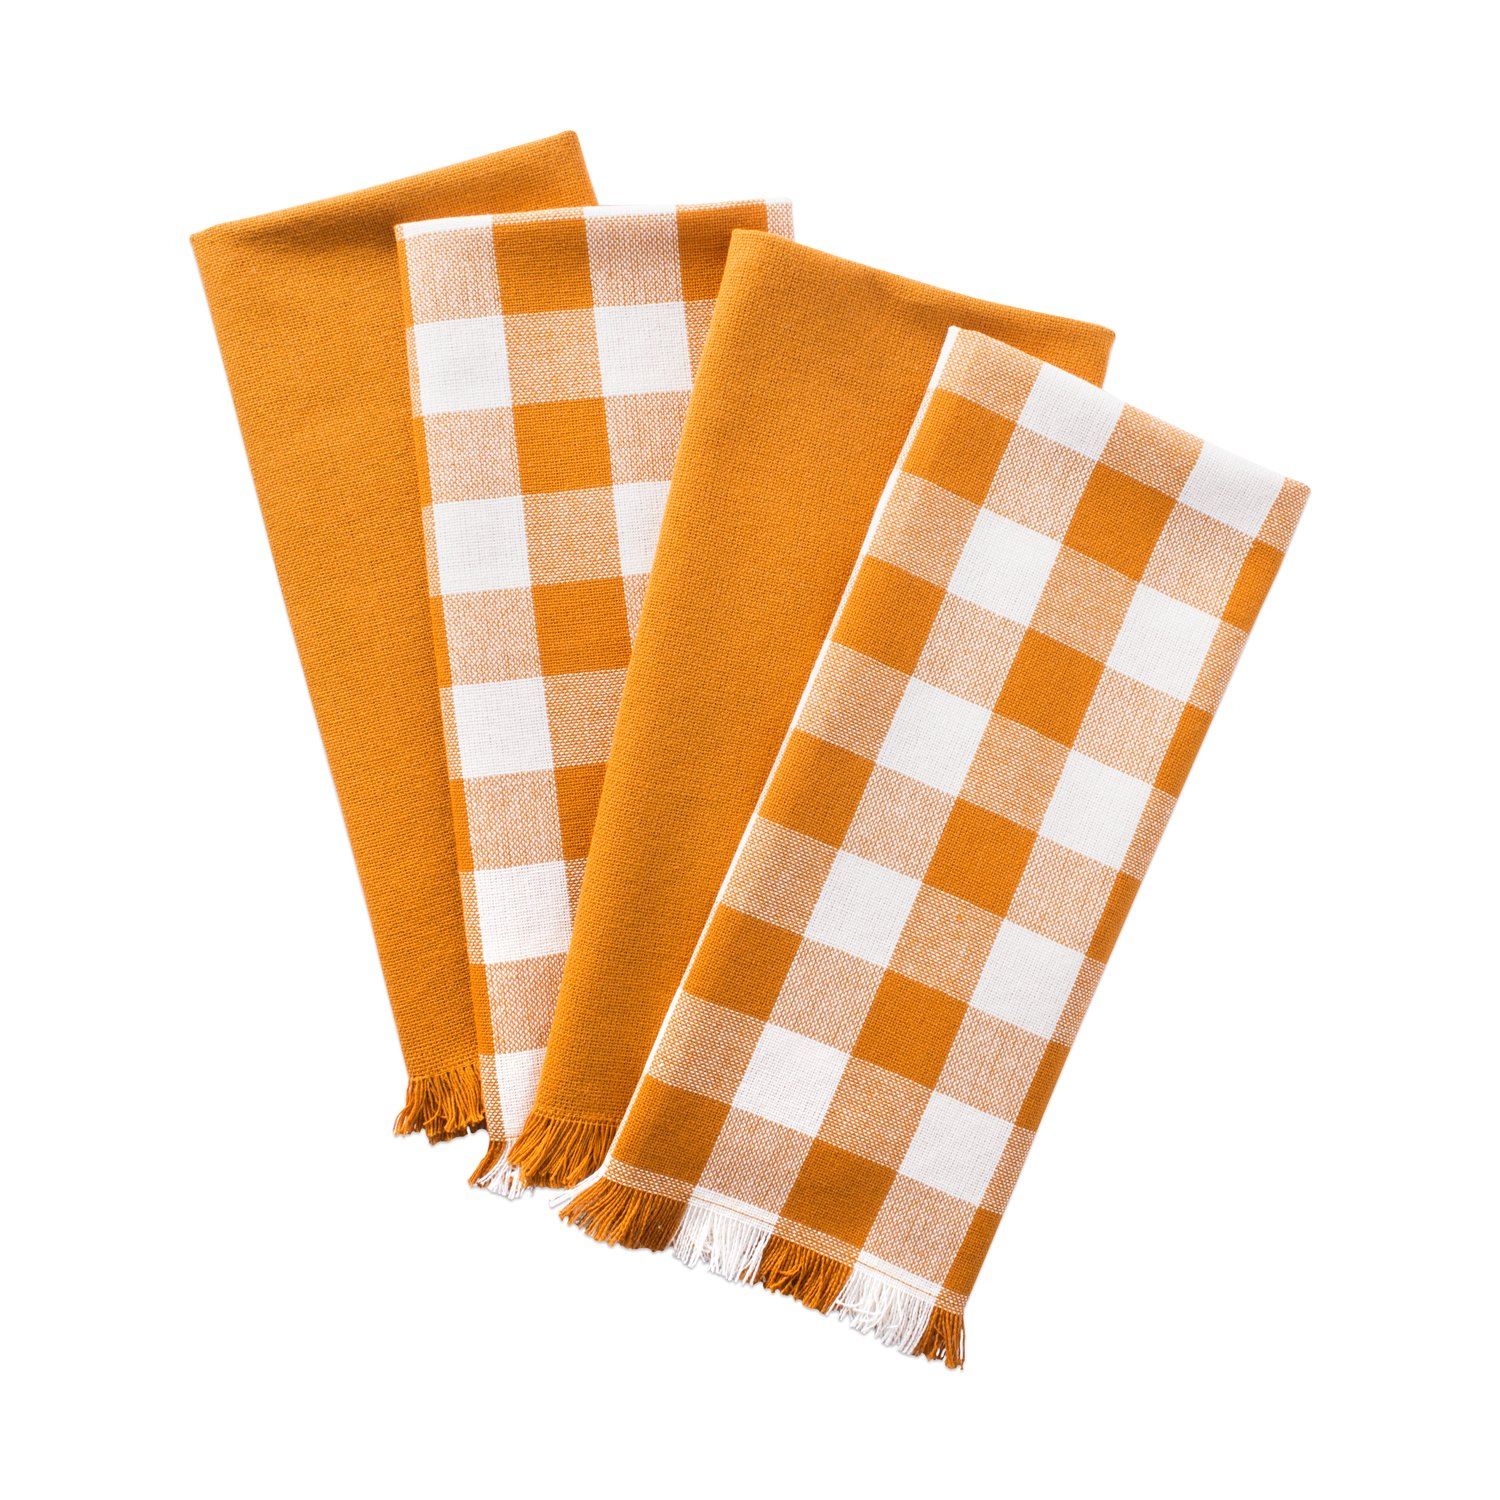 "DII Woven Heavyweight Cotton Dish Towels with Decorative Fringe, Absorbent Dishtowels for Drying and Cleaning Kitchen Dishes or Countertops (18x28"", Set of 4) Pumpkin Spice Checker"